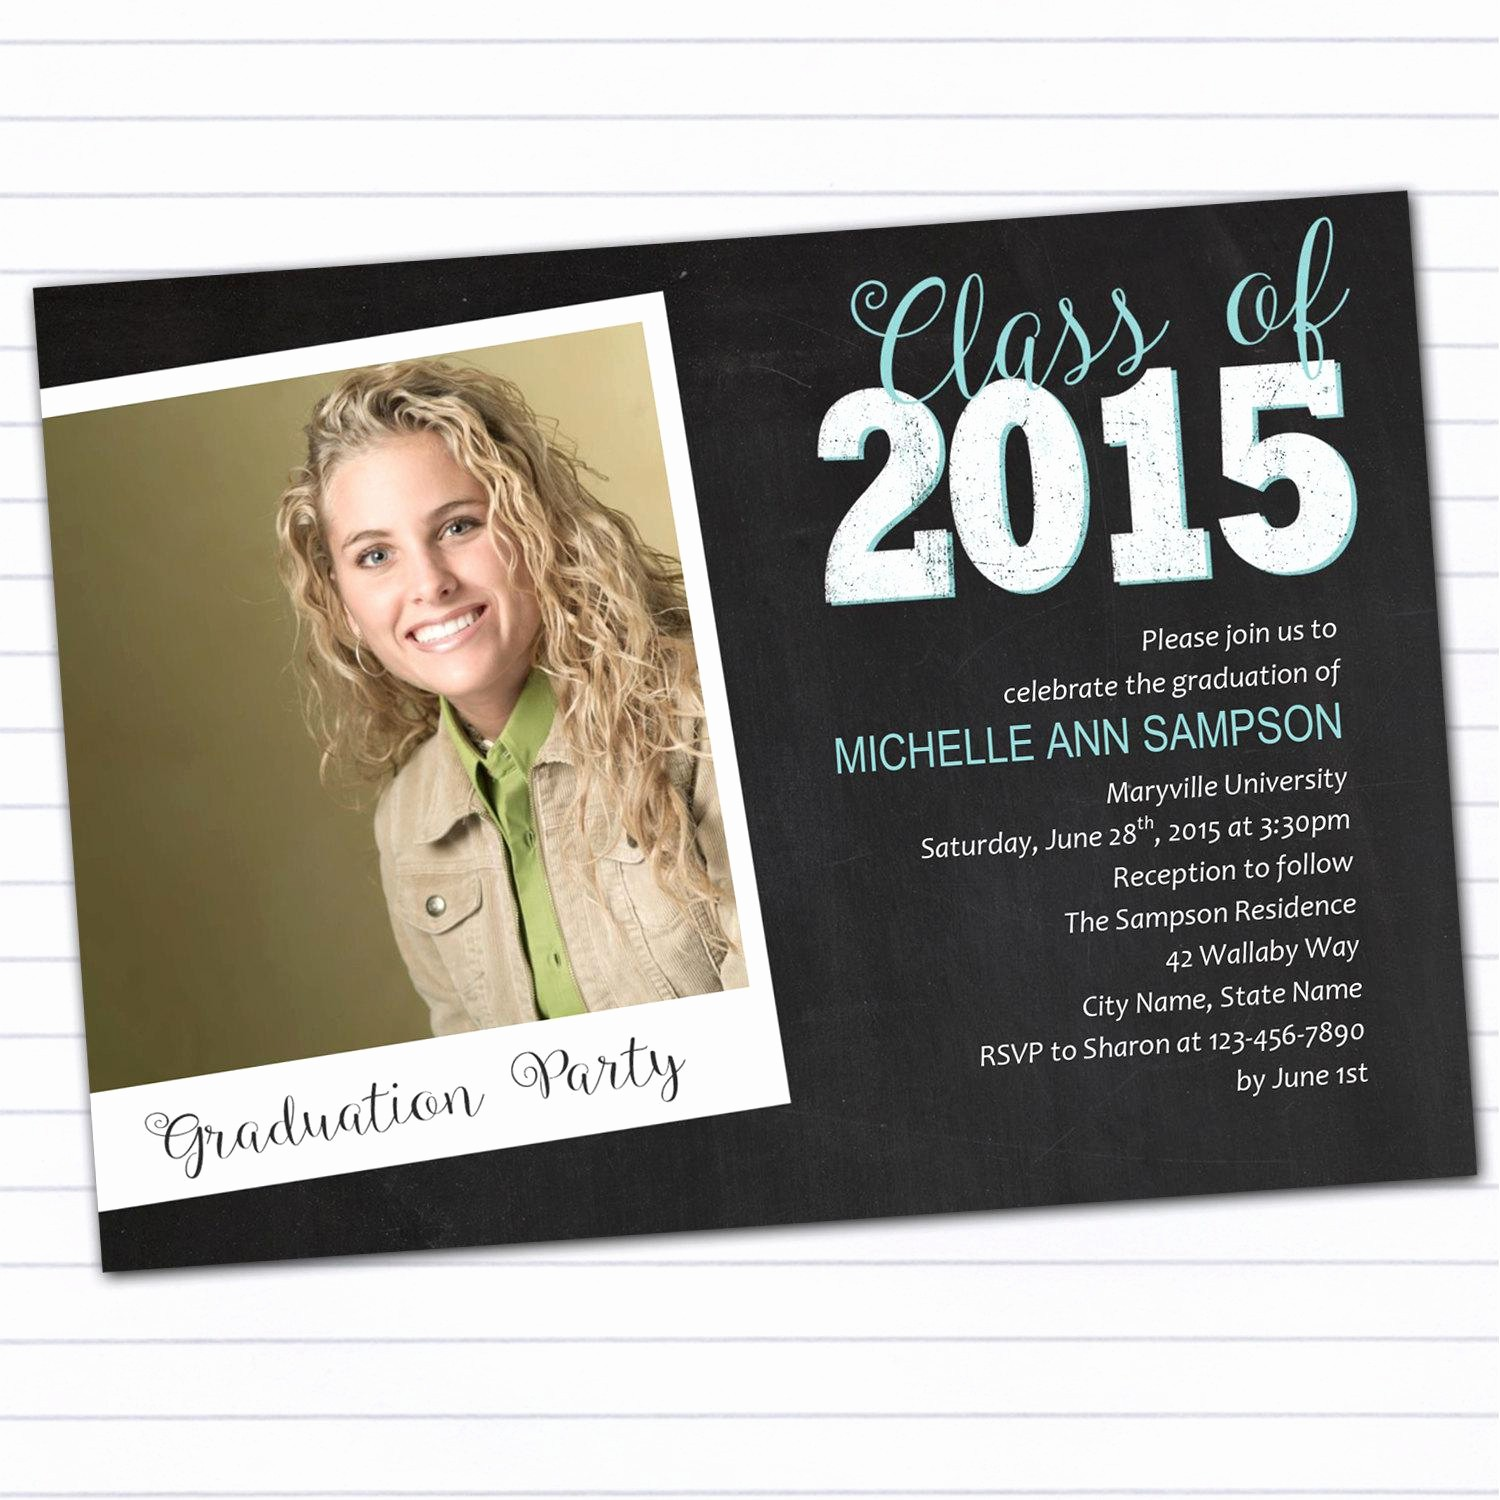 Template for Graduation Party Invitation Best Of College Graduation Party Invitations